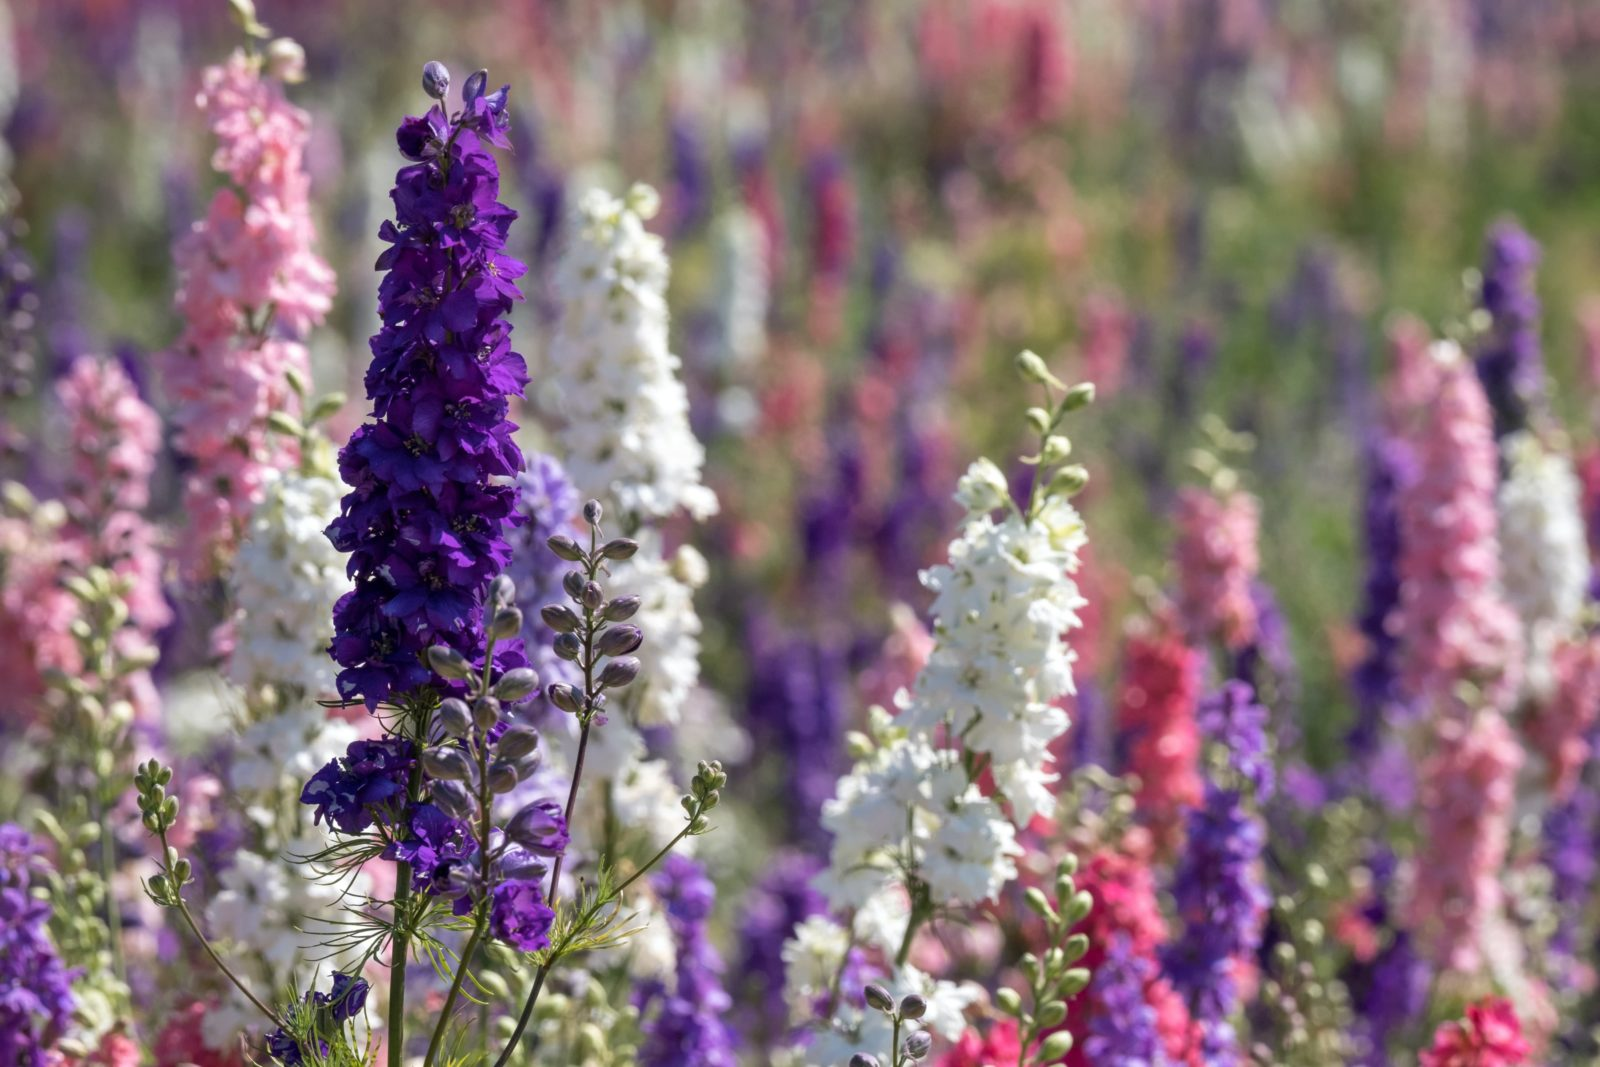 Delphiniums growing naturally in the wild